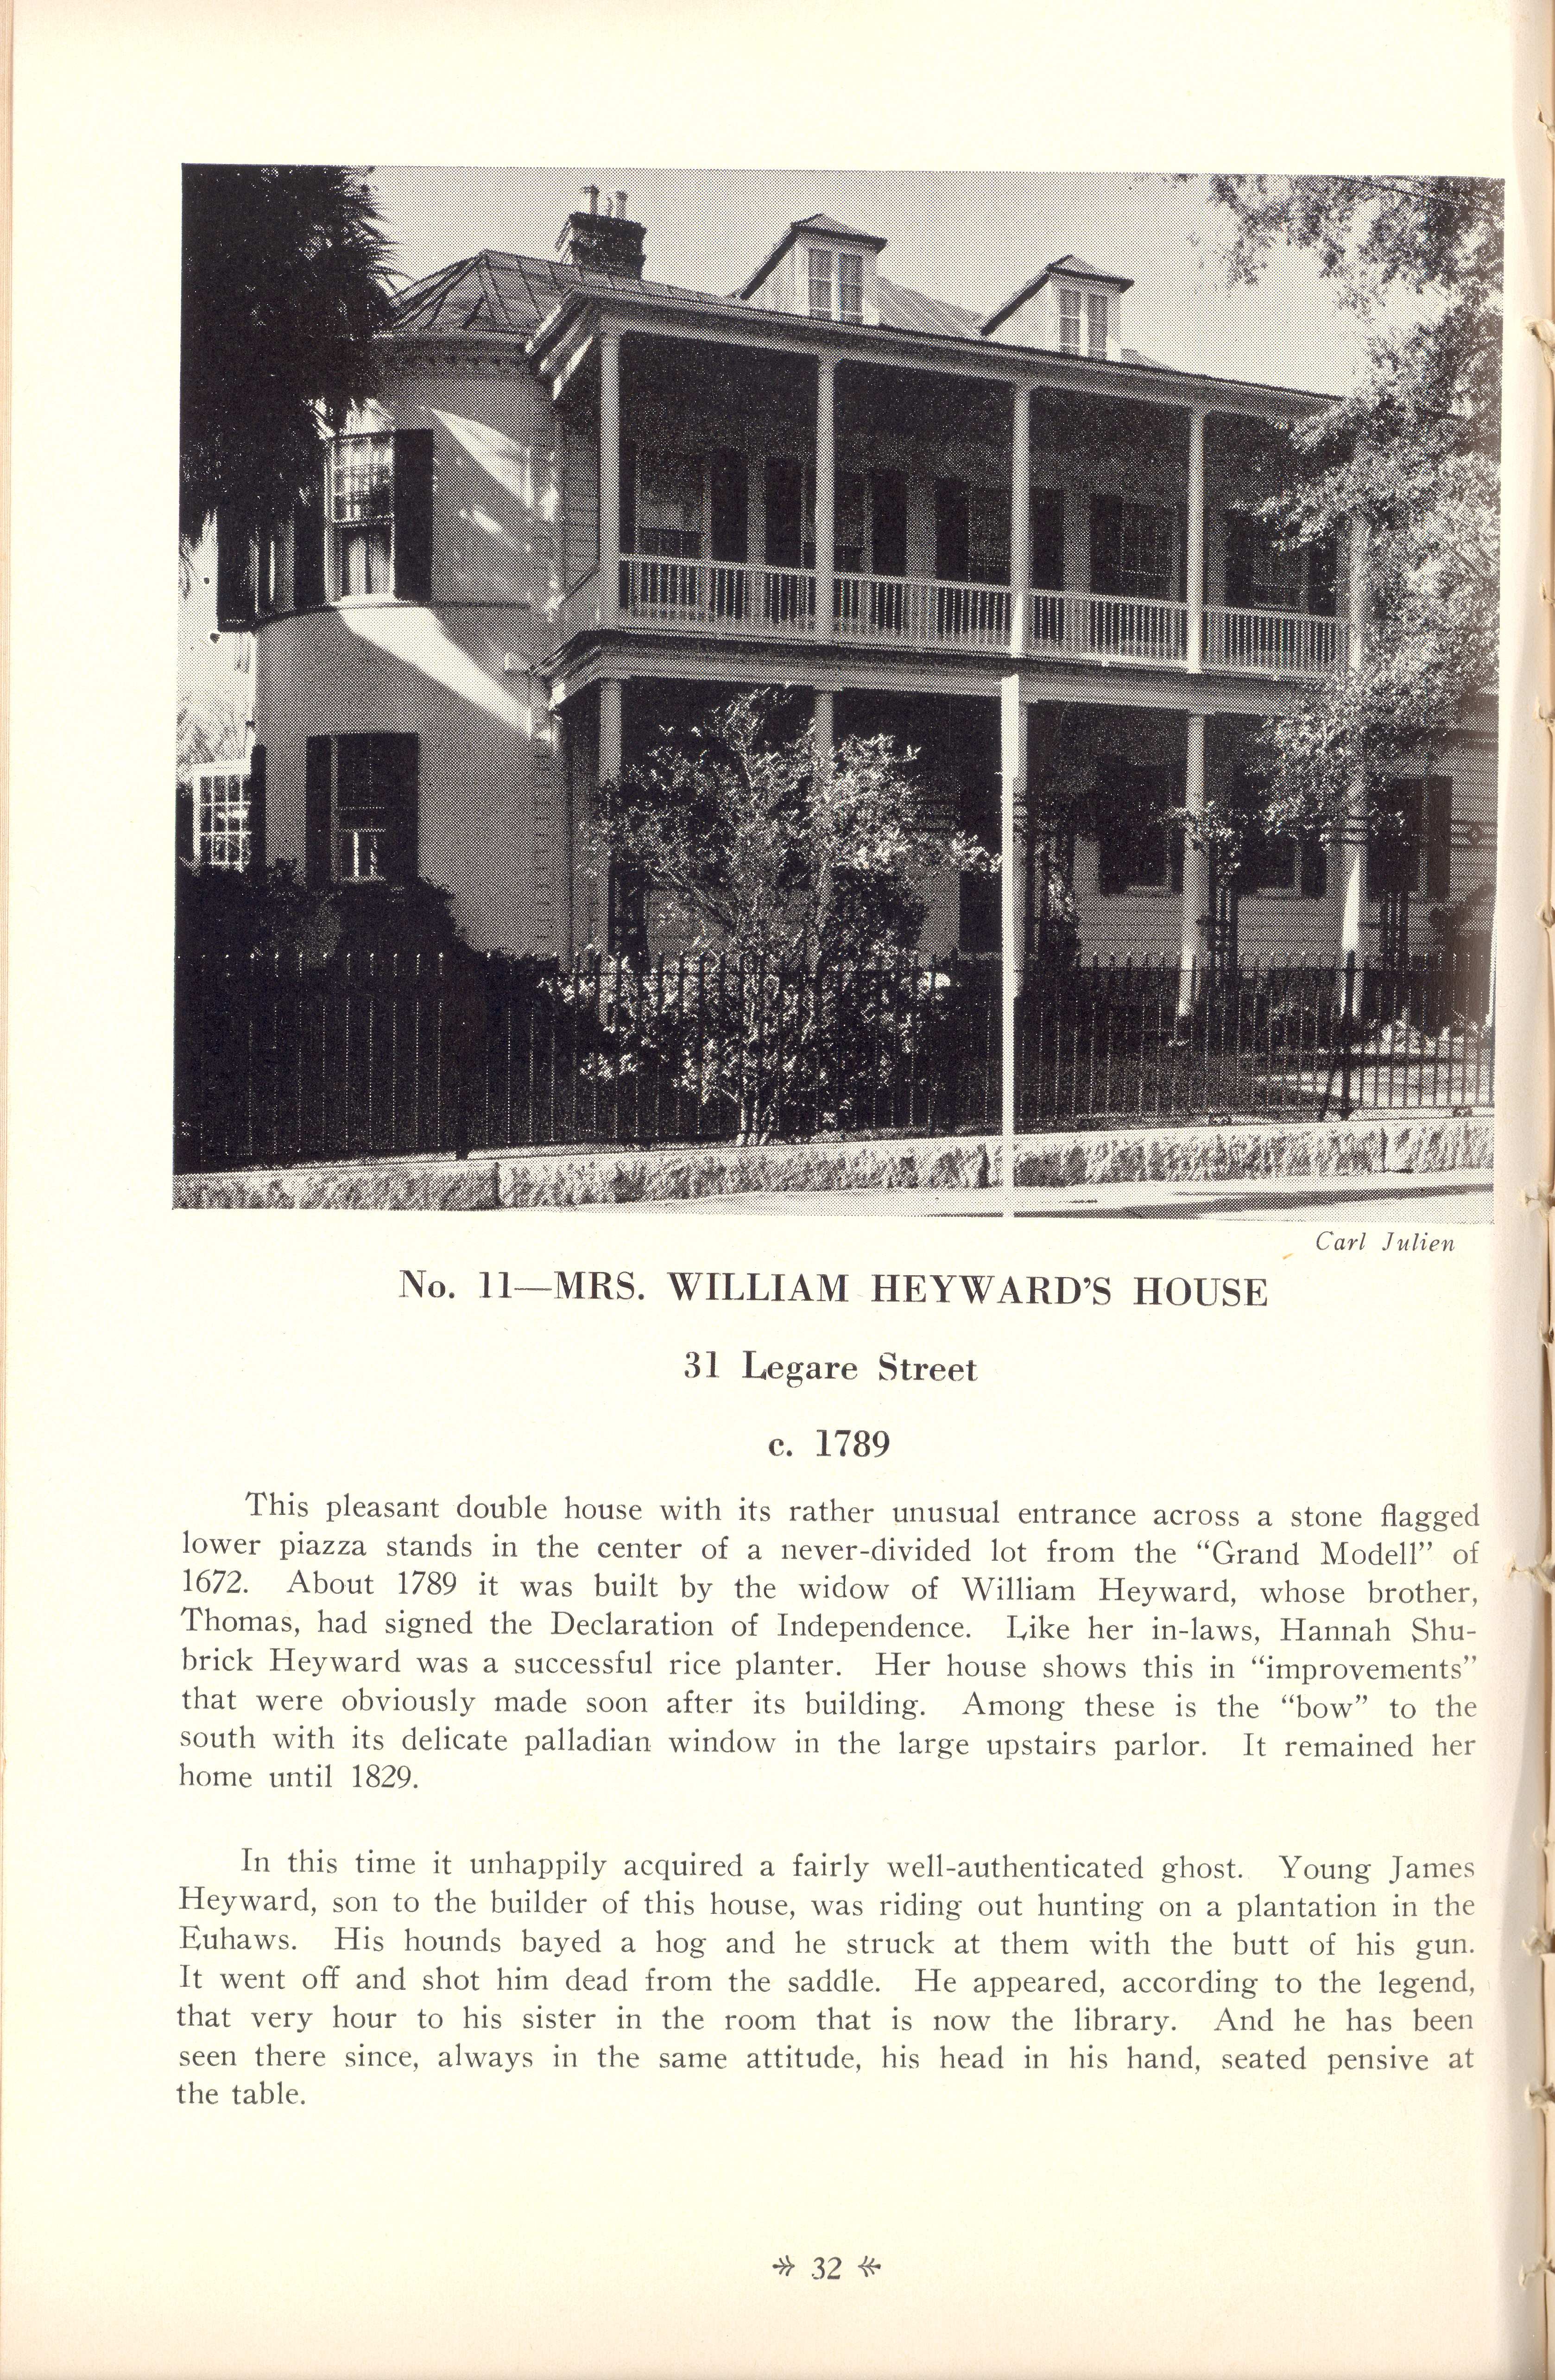 Page 32:  No. 11 - Mrs. William Heyward's House, 31 Legare Street, c. 1789